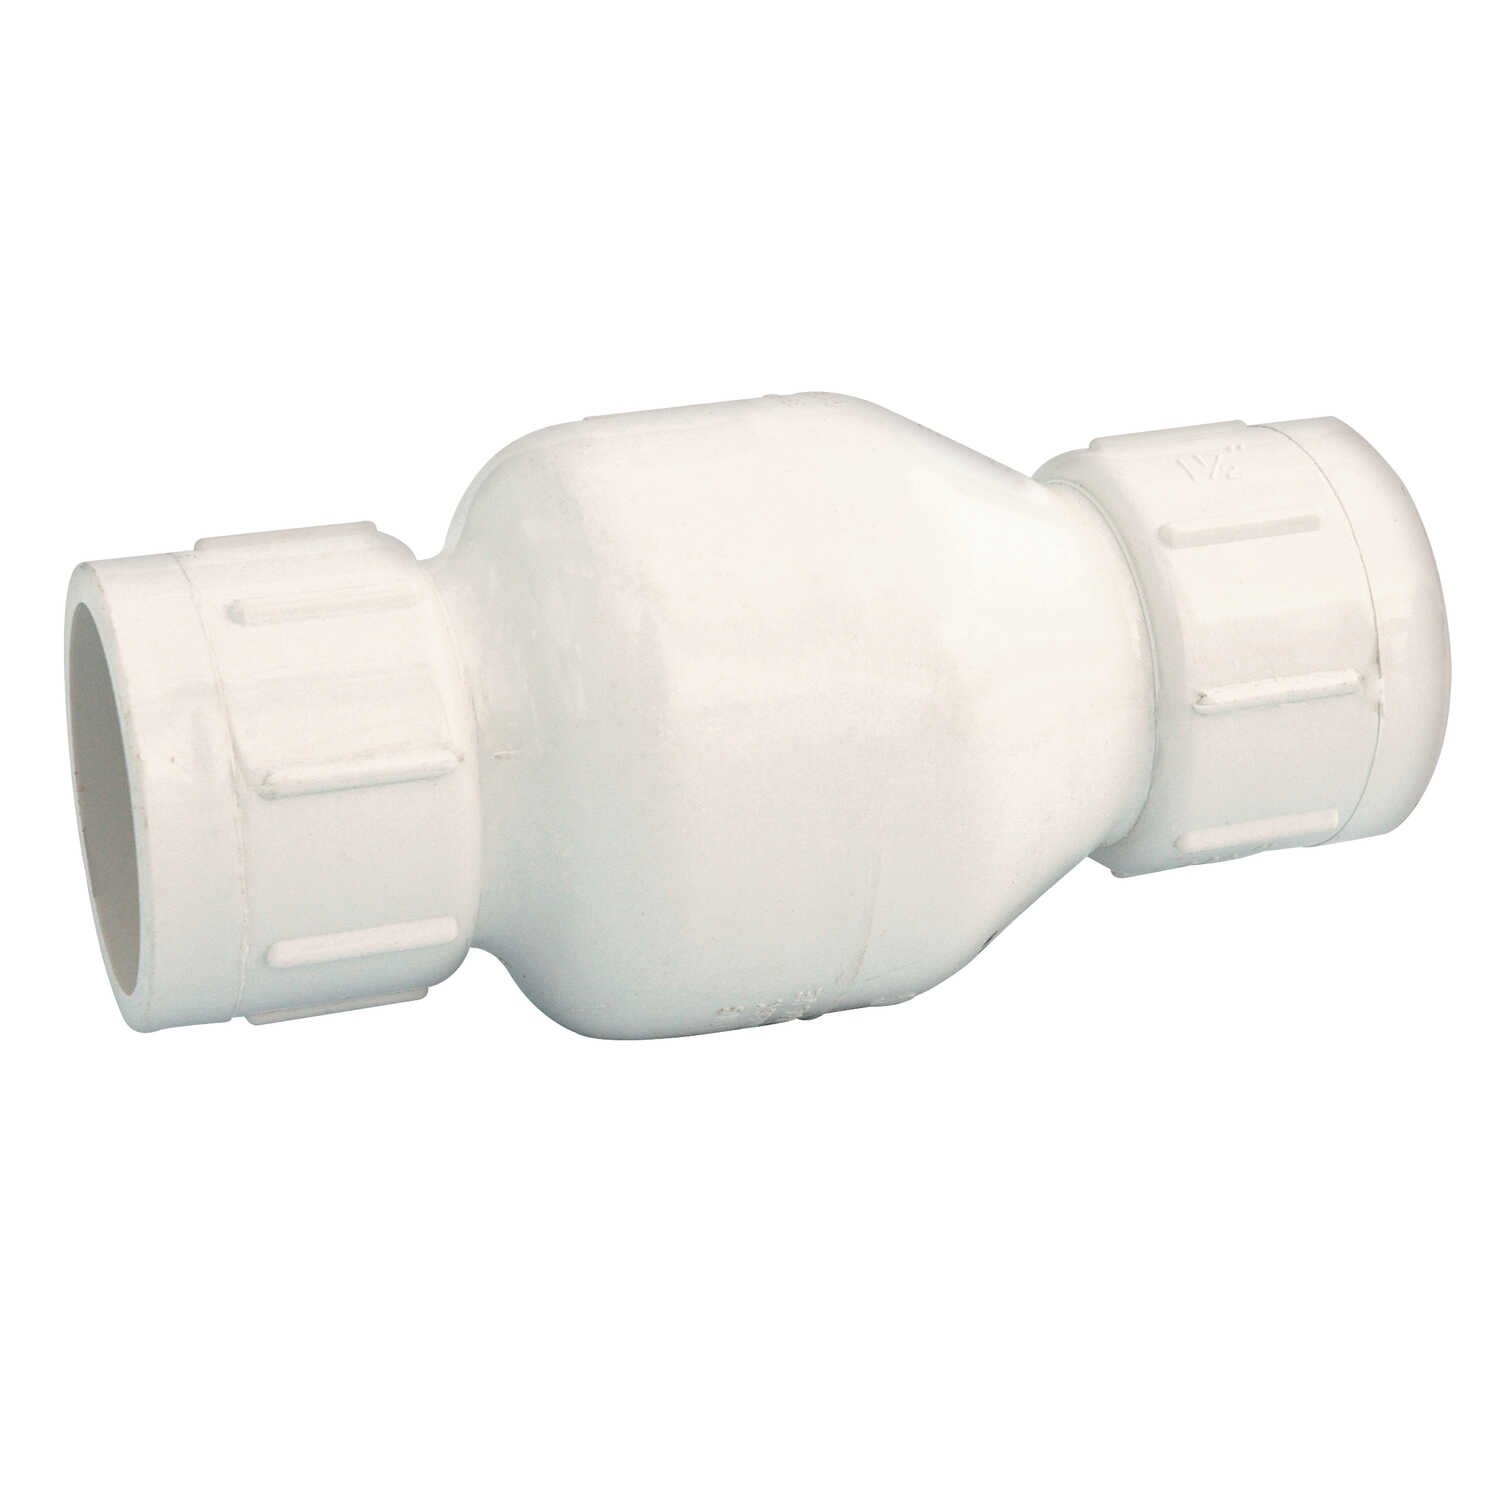 NDS  1/2 in. FIPT X 1/2 in. FIPT  PVC  Spring Loaded  Check Valve